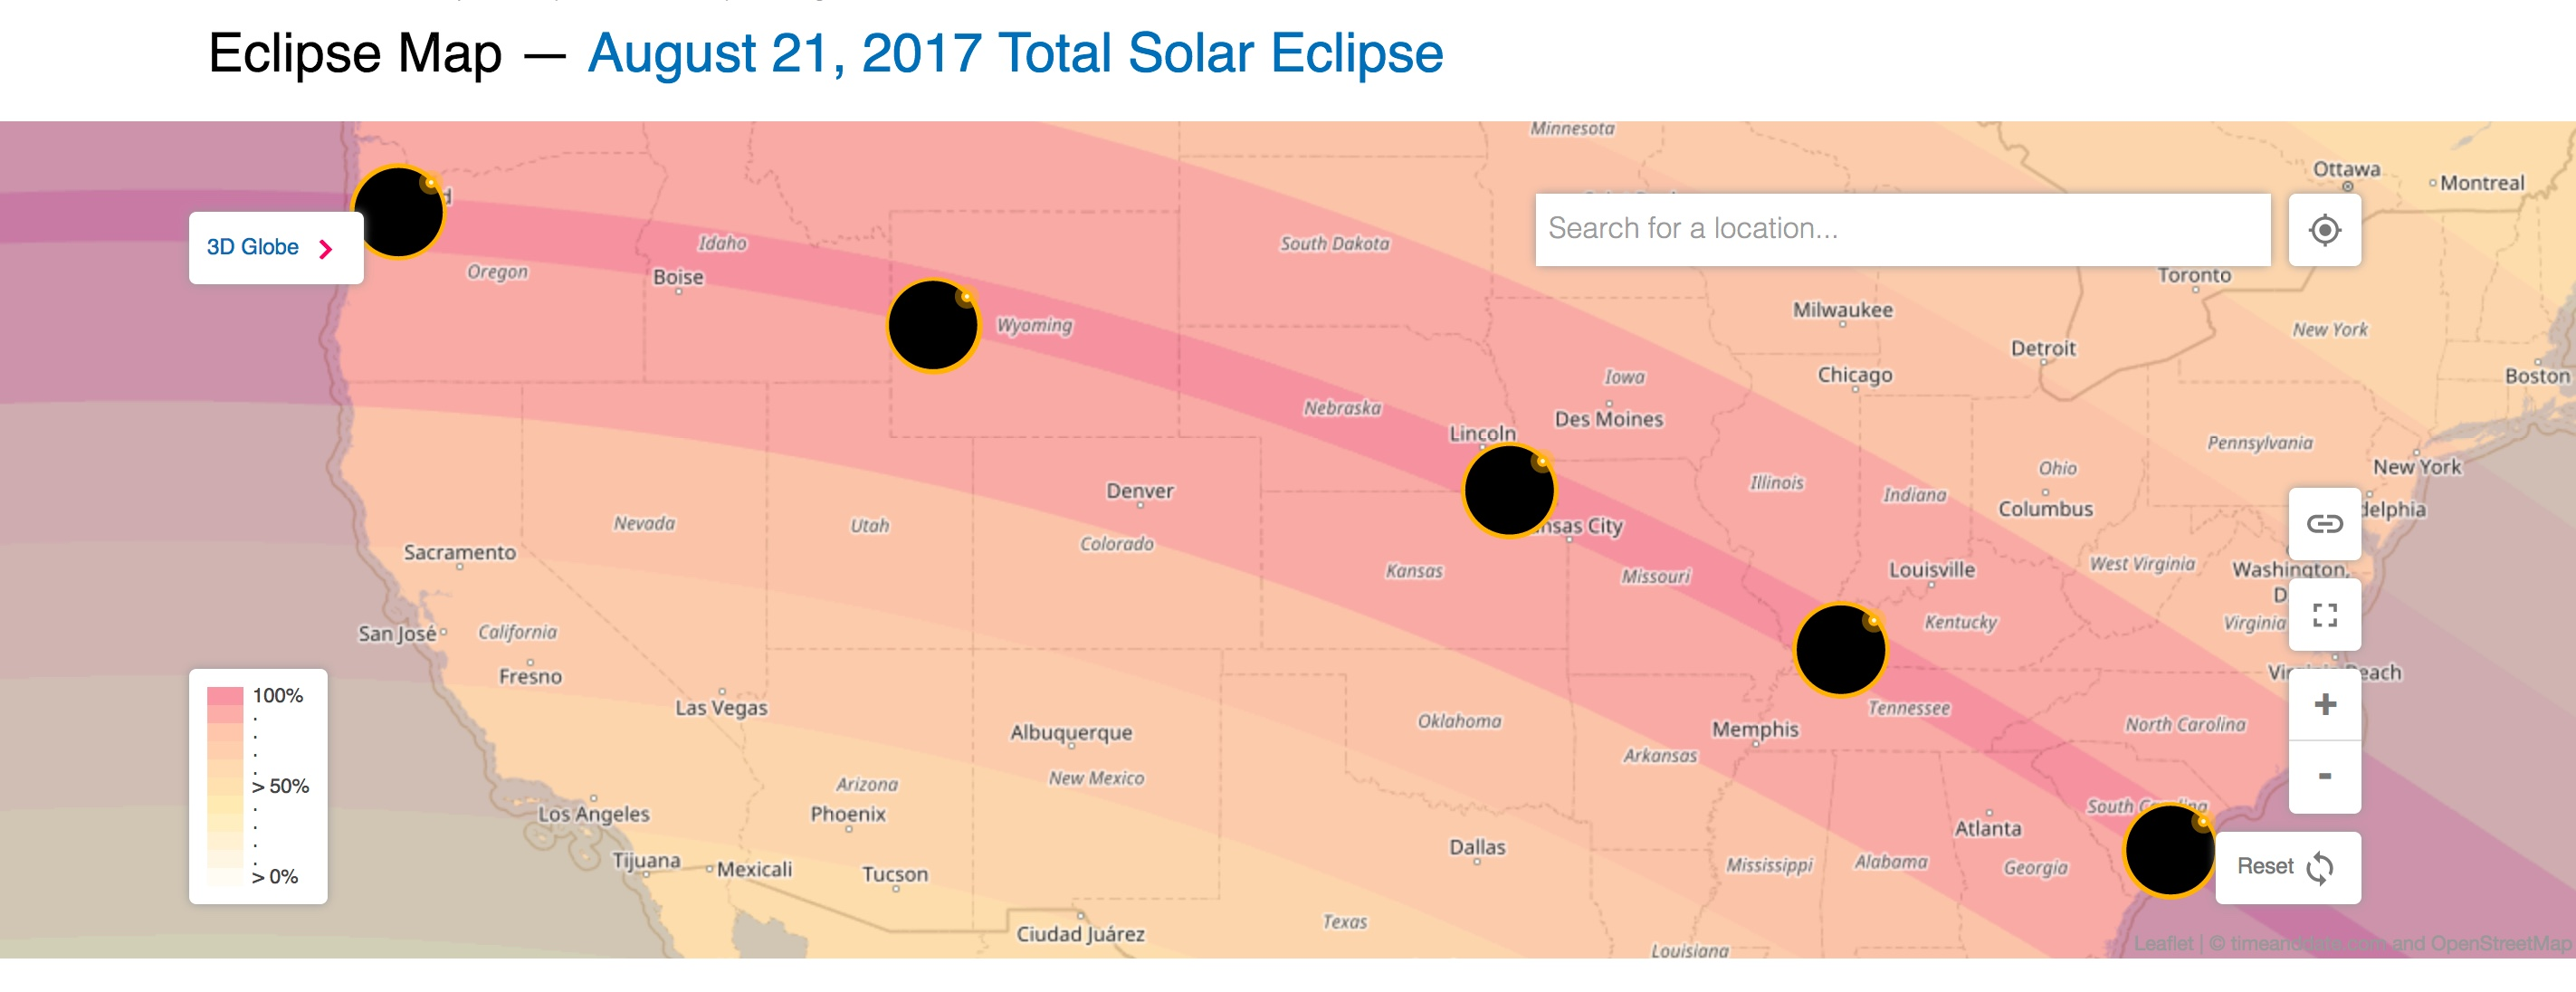 Map of the path of totality of the 2017 Total Solar Eclipse